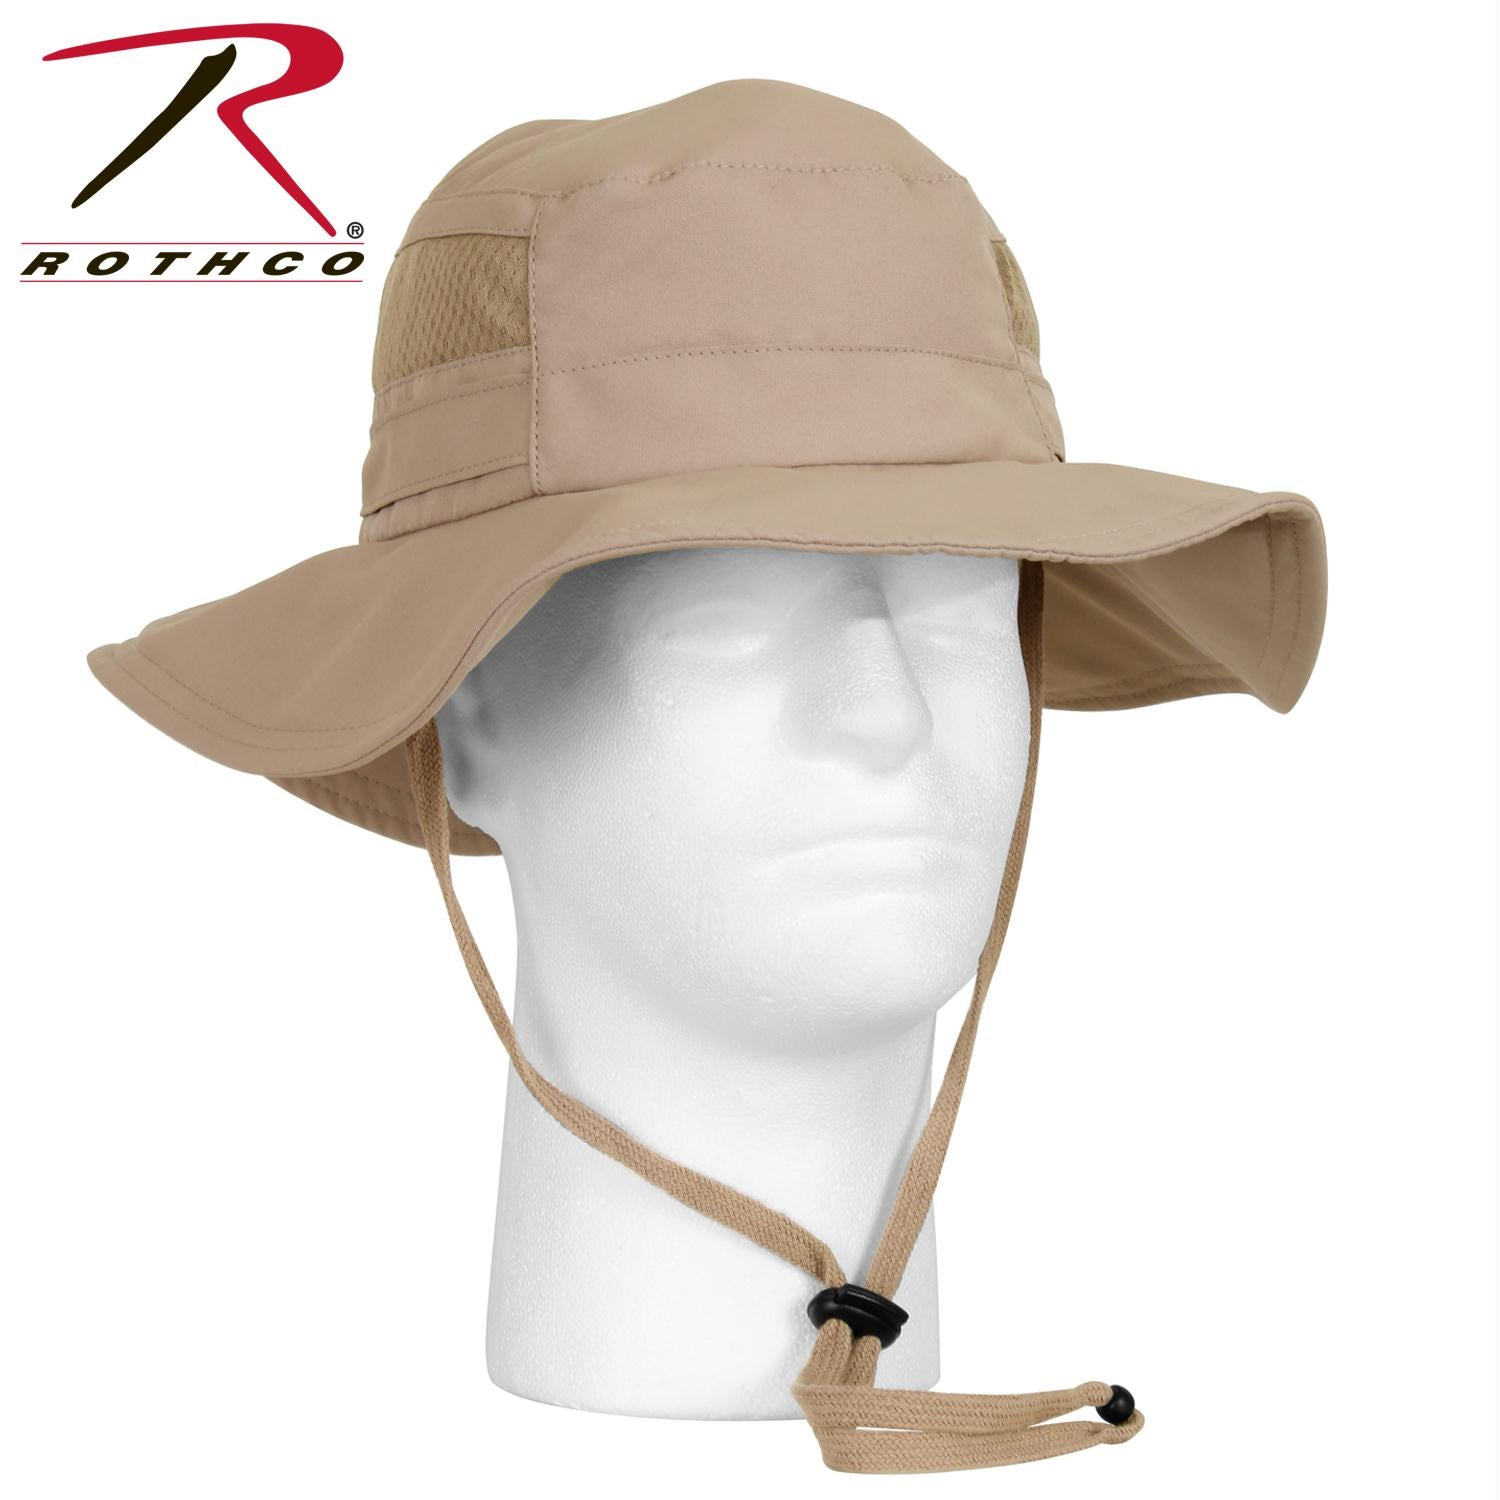 0e19da394ed Rothco Lightweight Adjustable Mesh Boonie Hat - Wholesale Army Navy